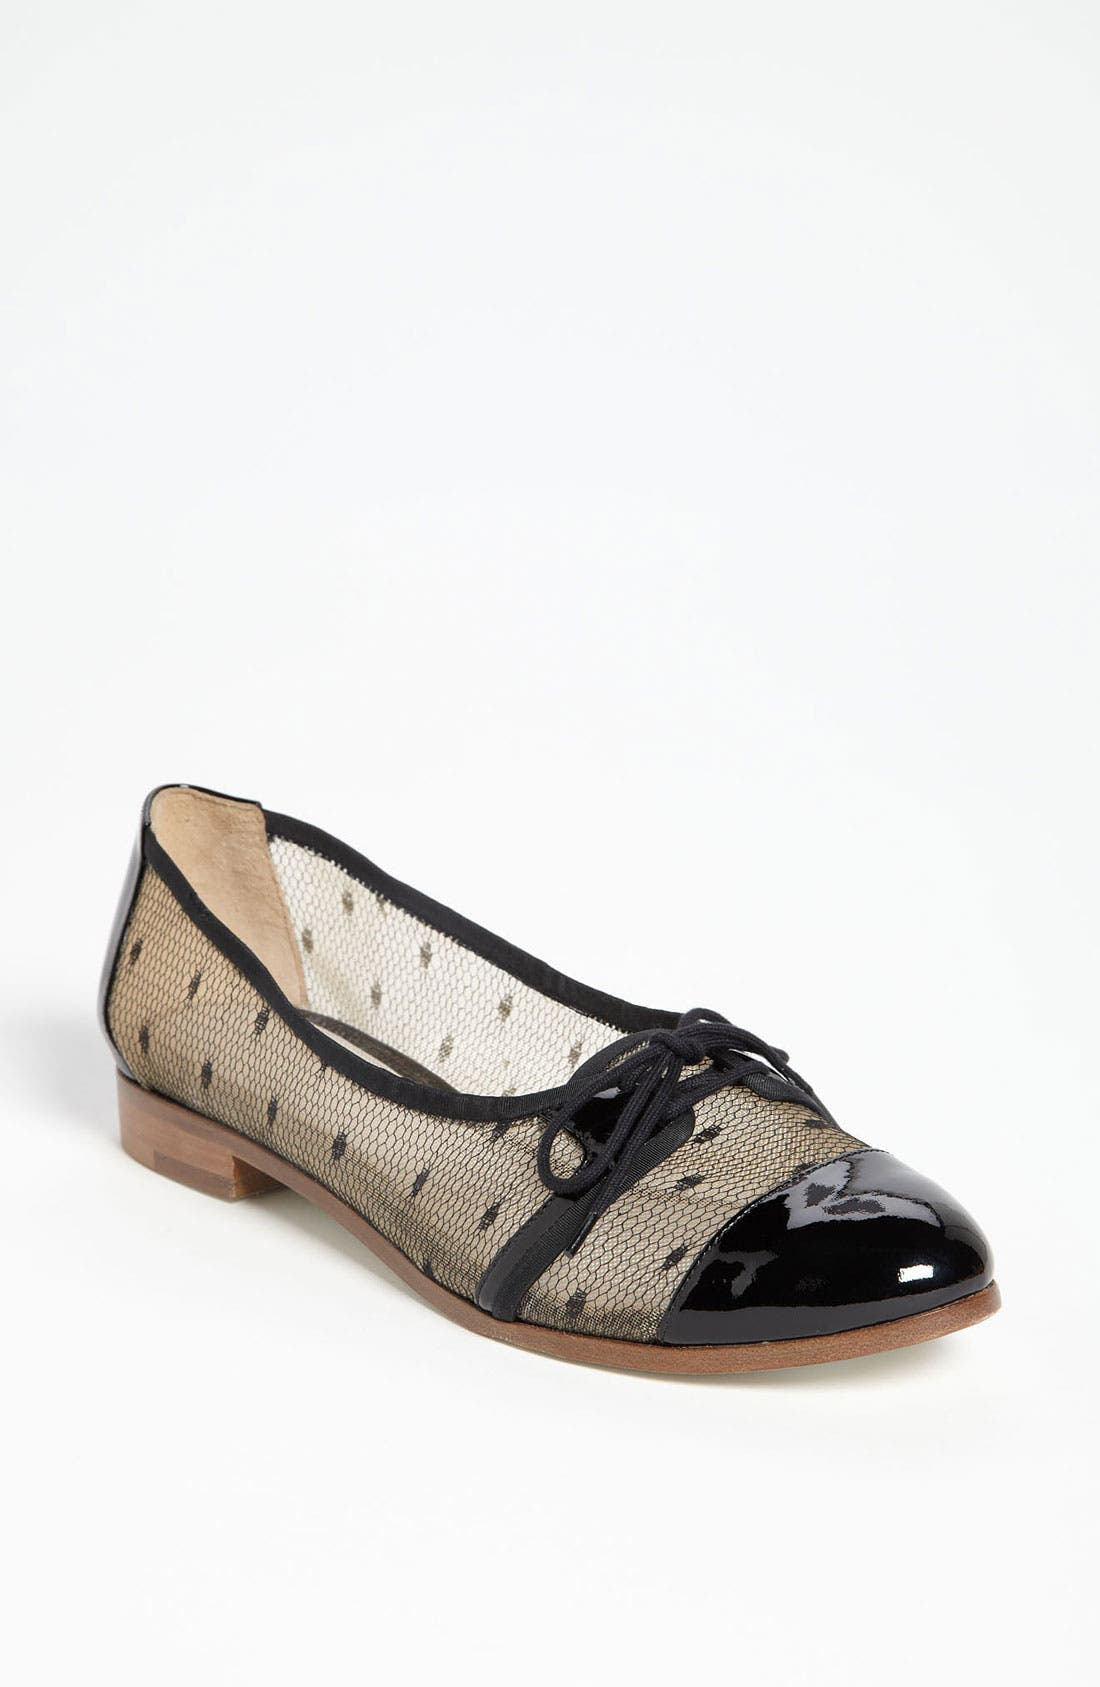 Alternate Image 1 Selected - Jason Wu 'Dorian' Cap Toe Loafer